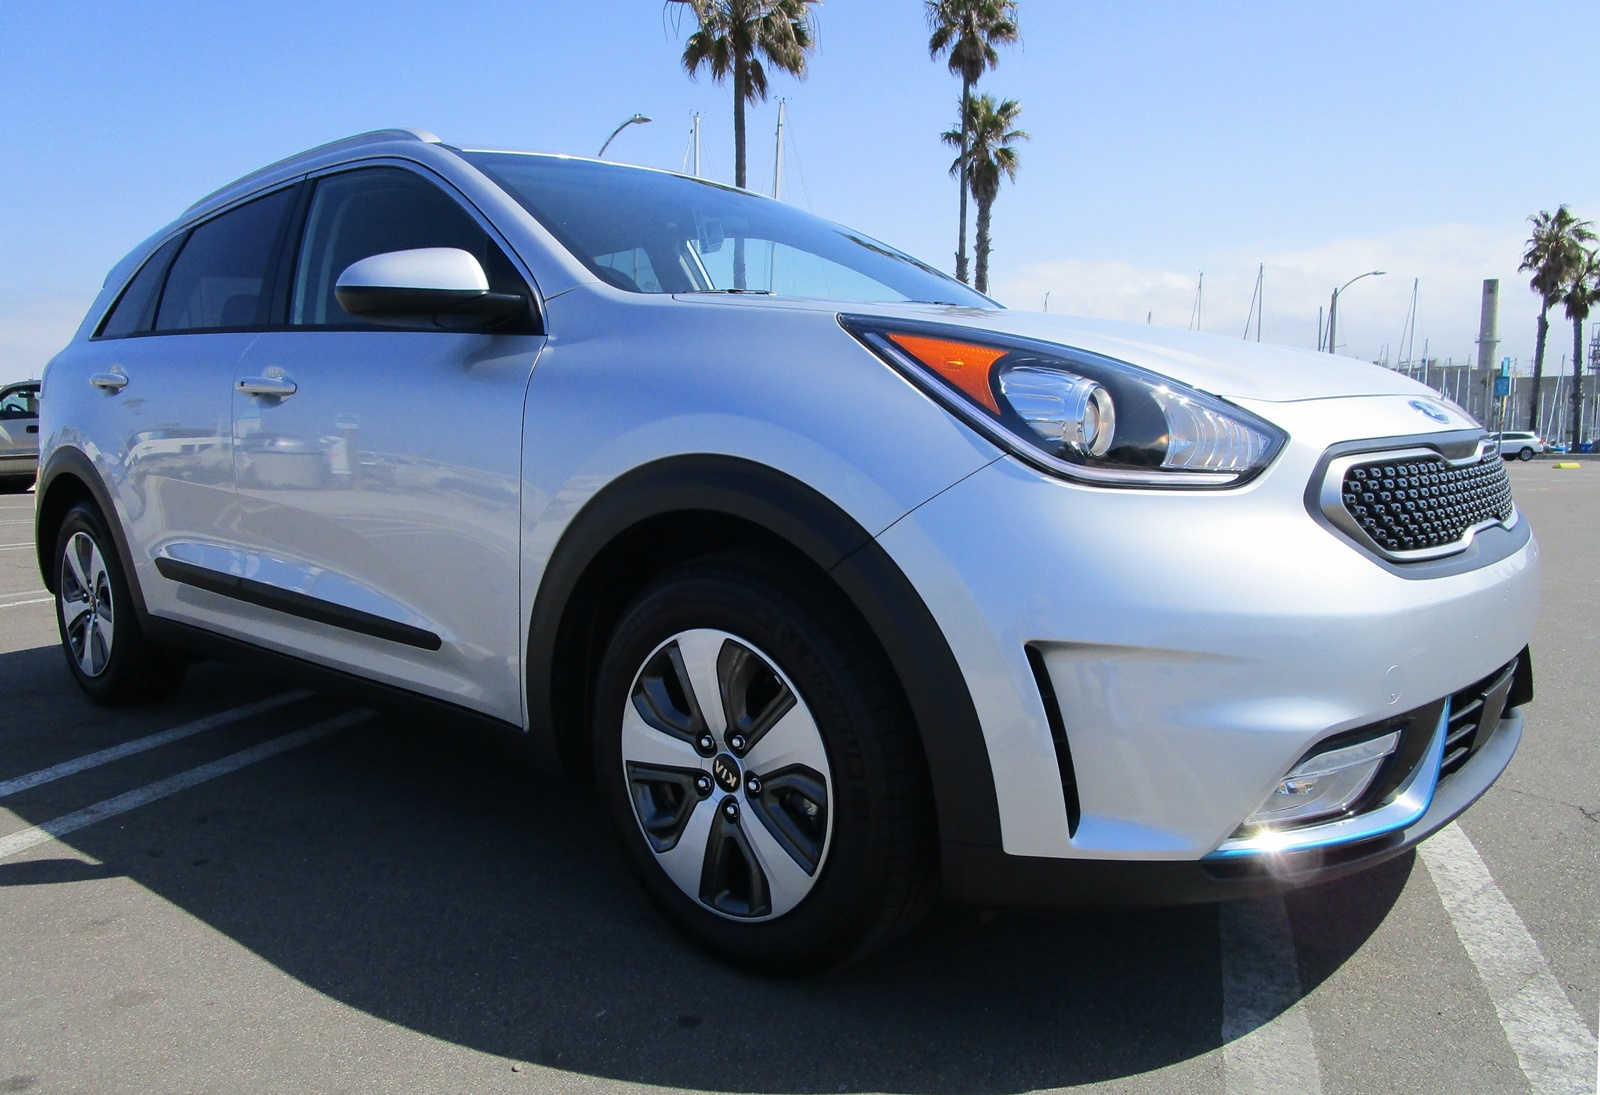 2018 kia niro phev lx 240mpg road test review by ben. Black Bedroom Furniture Sets. Home Design Ideas